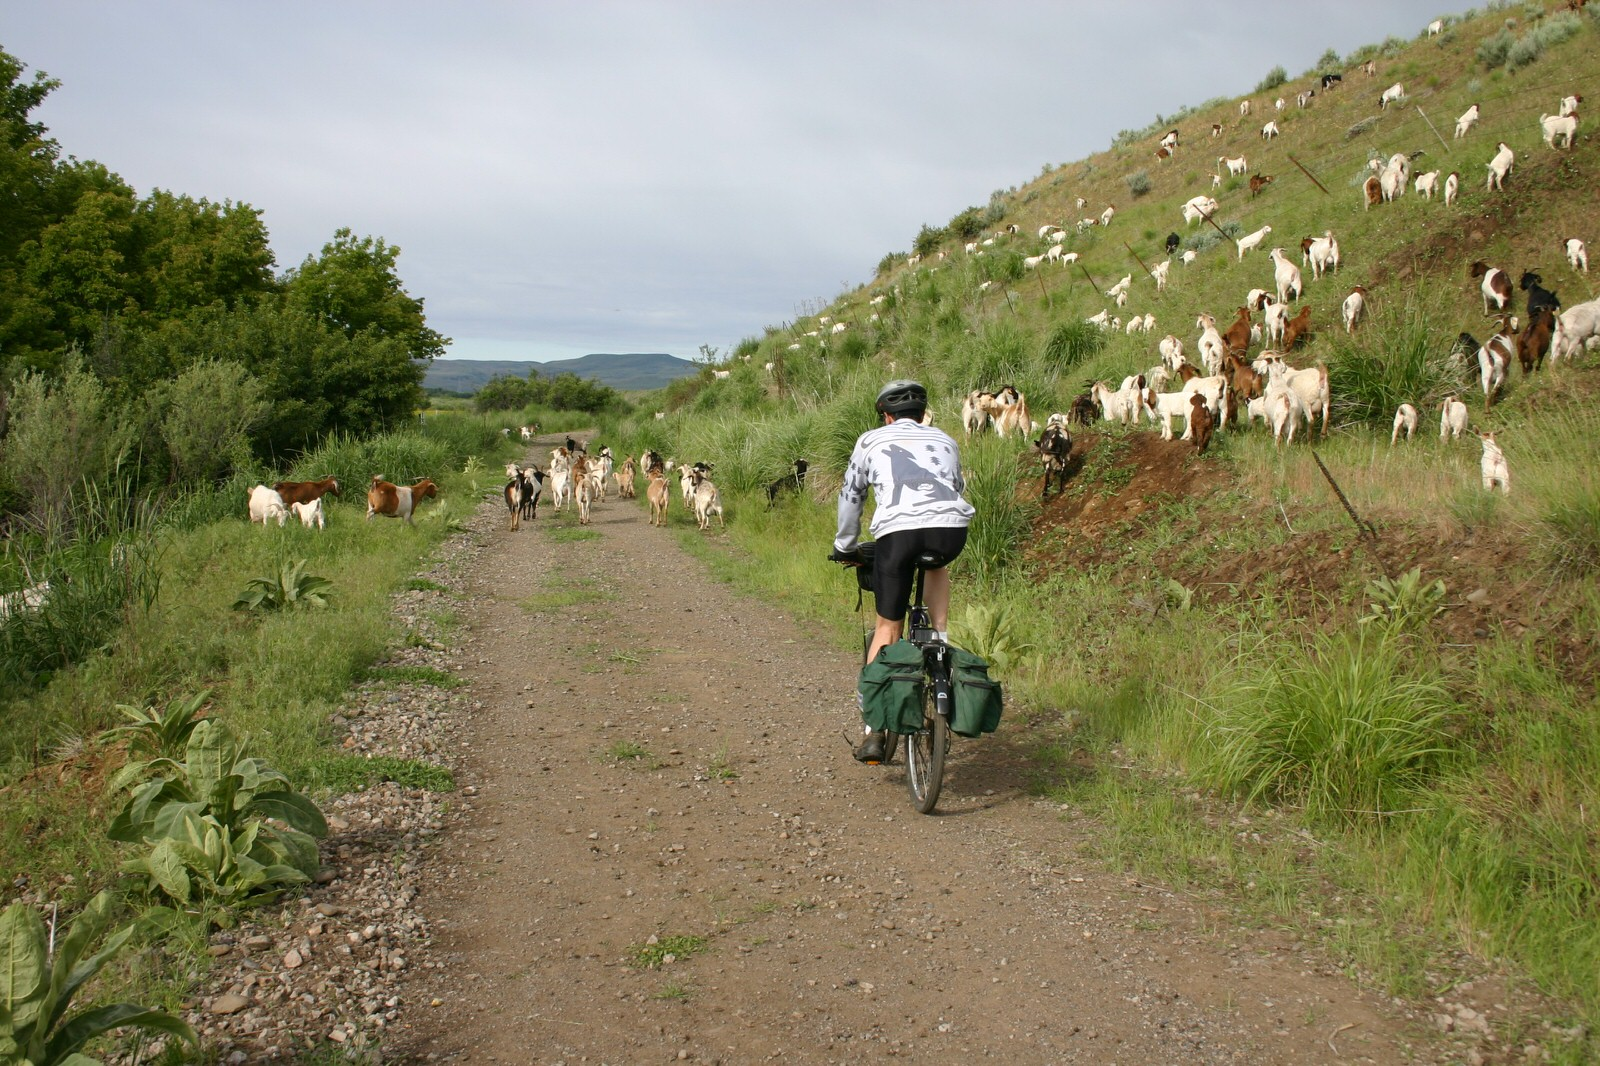 photo: Goat crossing. Photo by Friends of the Weiser River Tr.